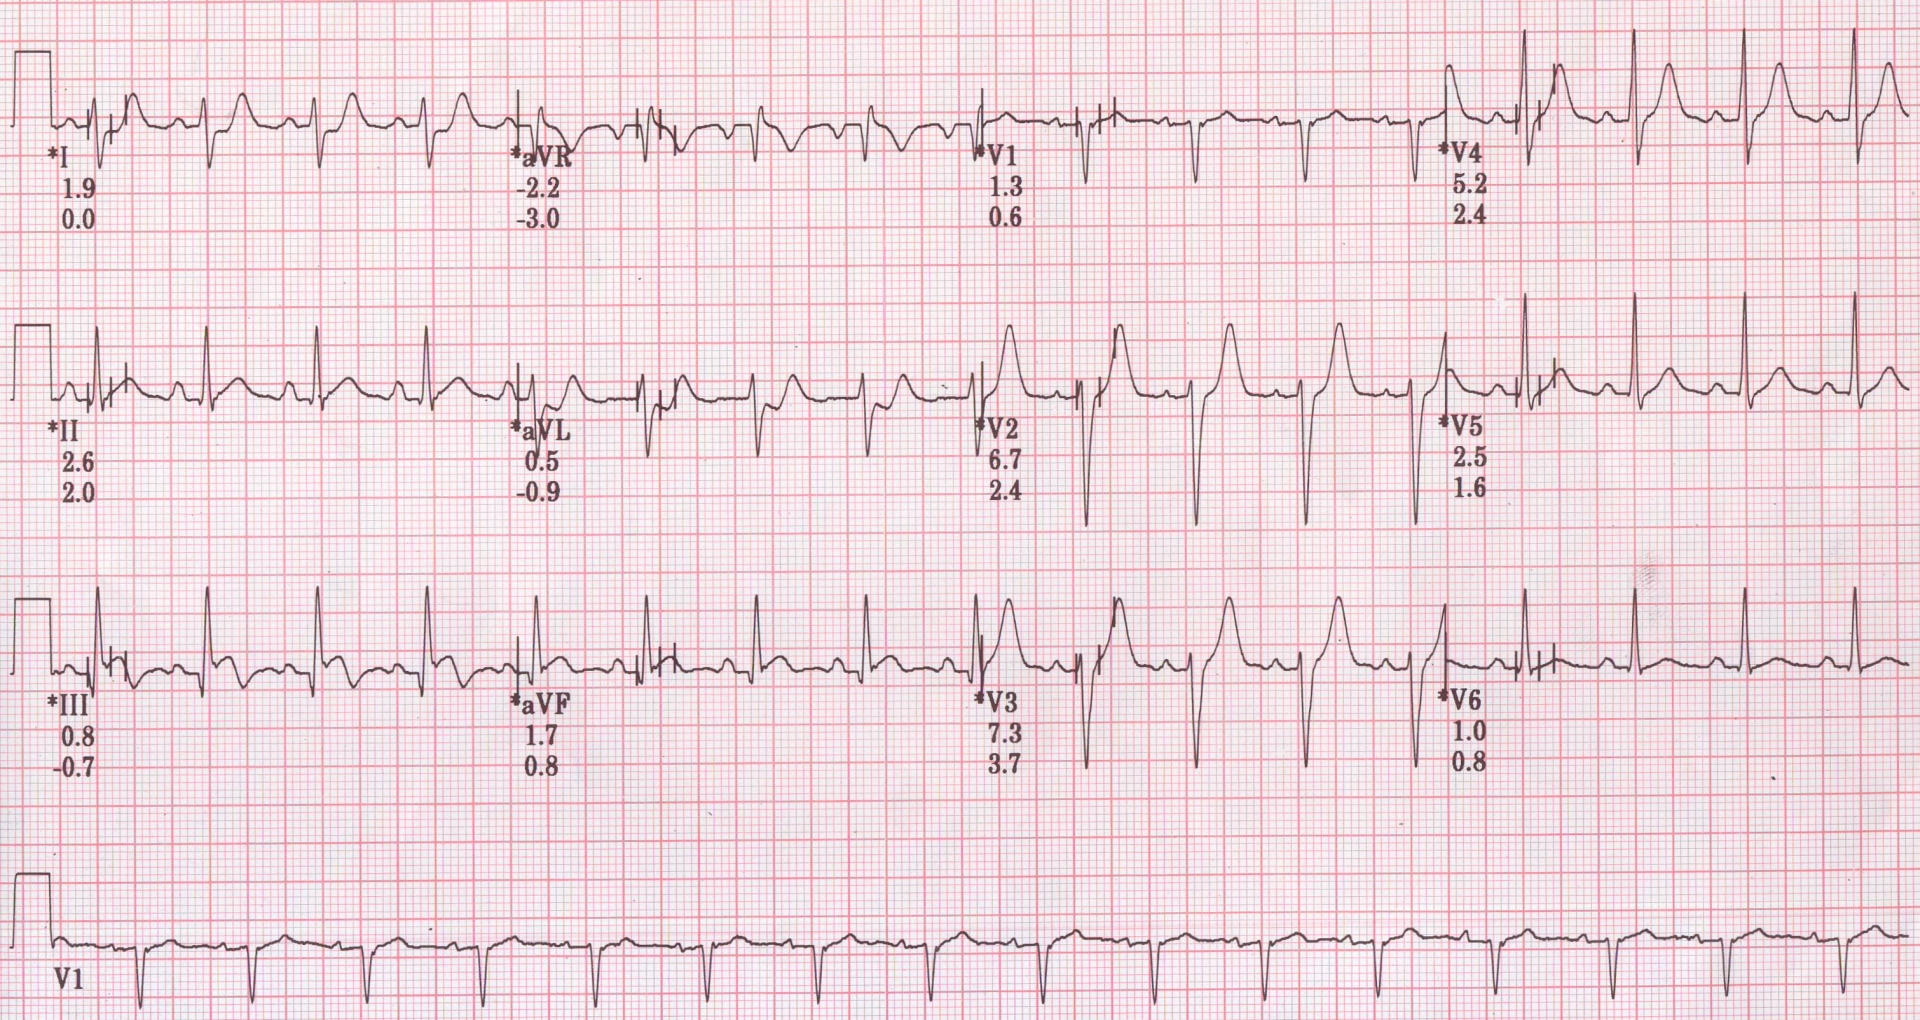 Ont Elevation Images : St elevation during treadmill test cardiophile md